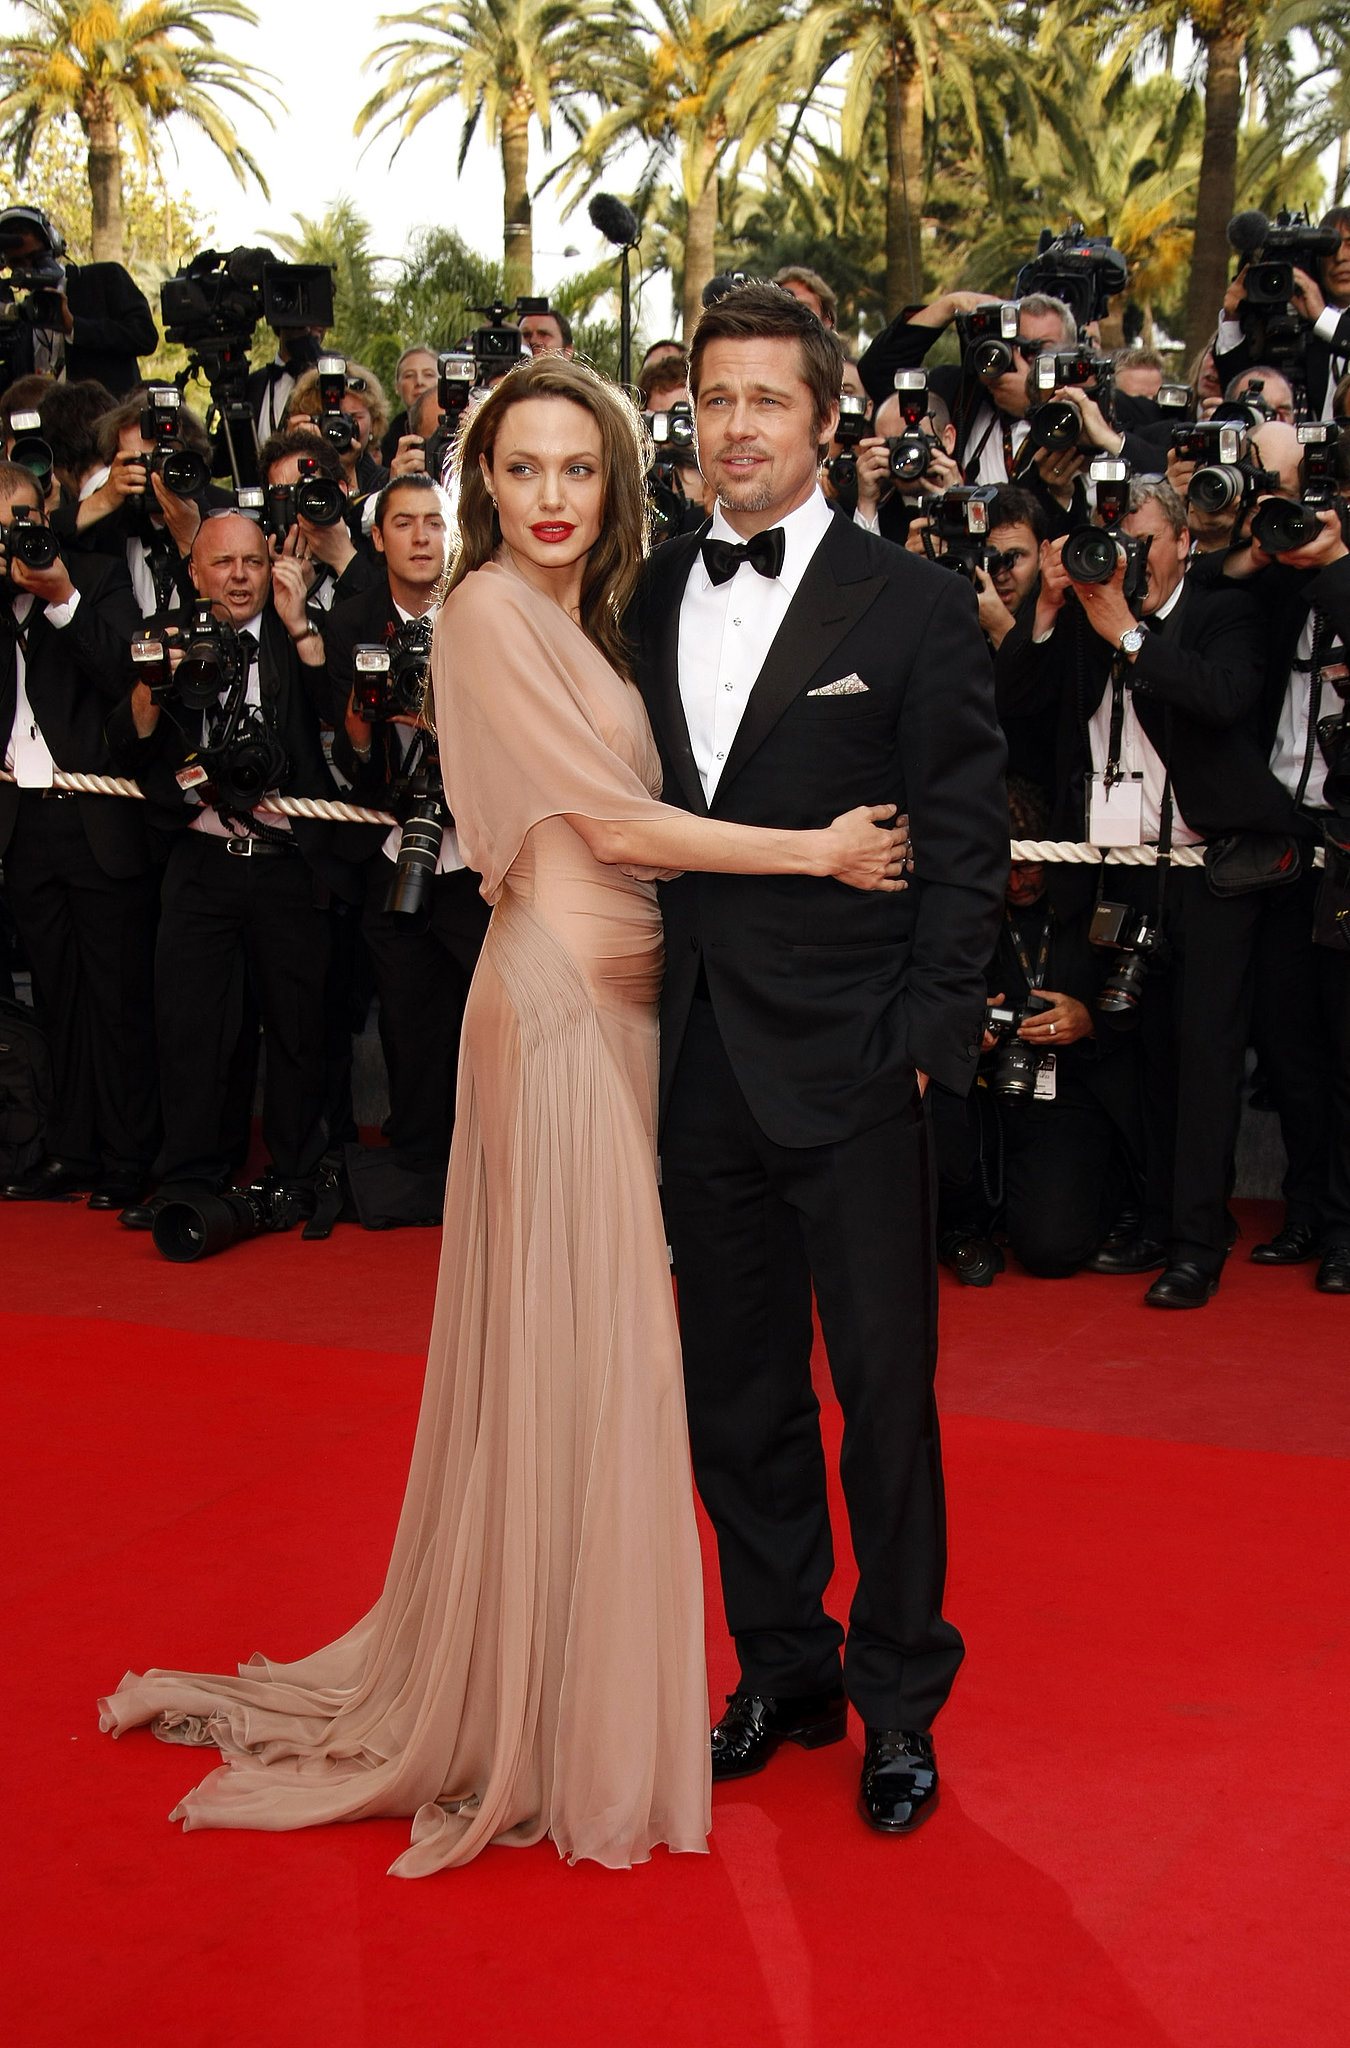 Angelina Jolie embraced Brad Pitt at the Inglourious Basterds premiere during the 62nd Cannes Film